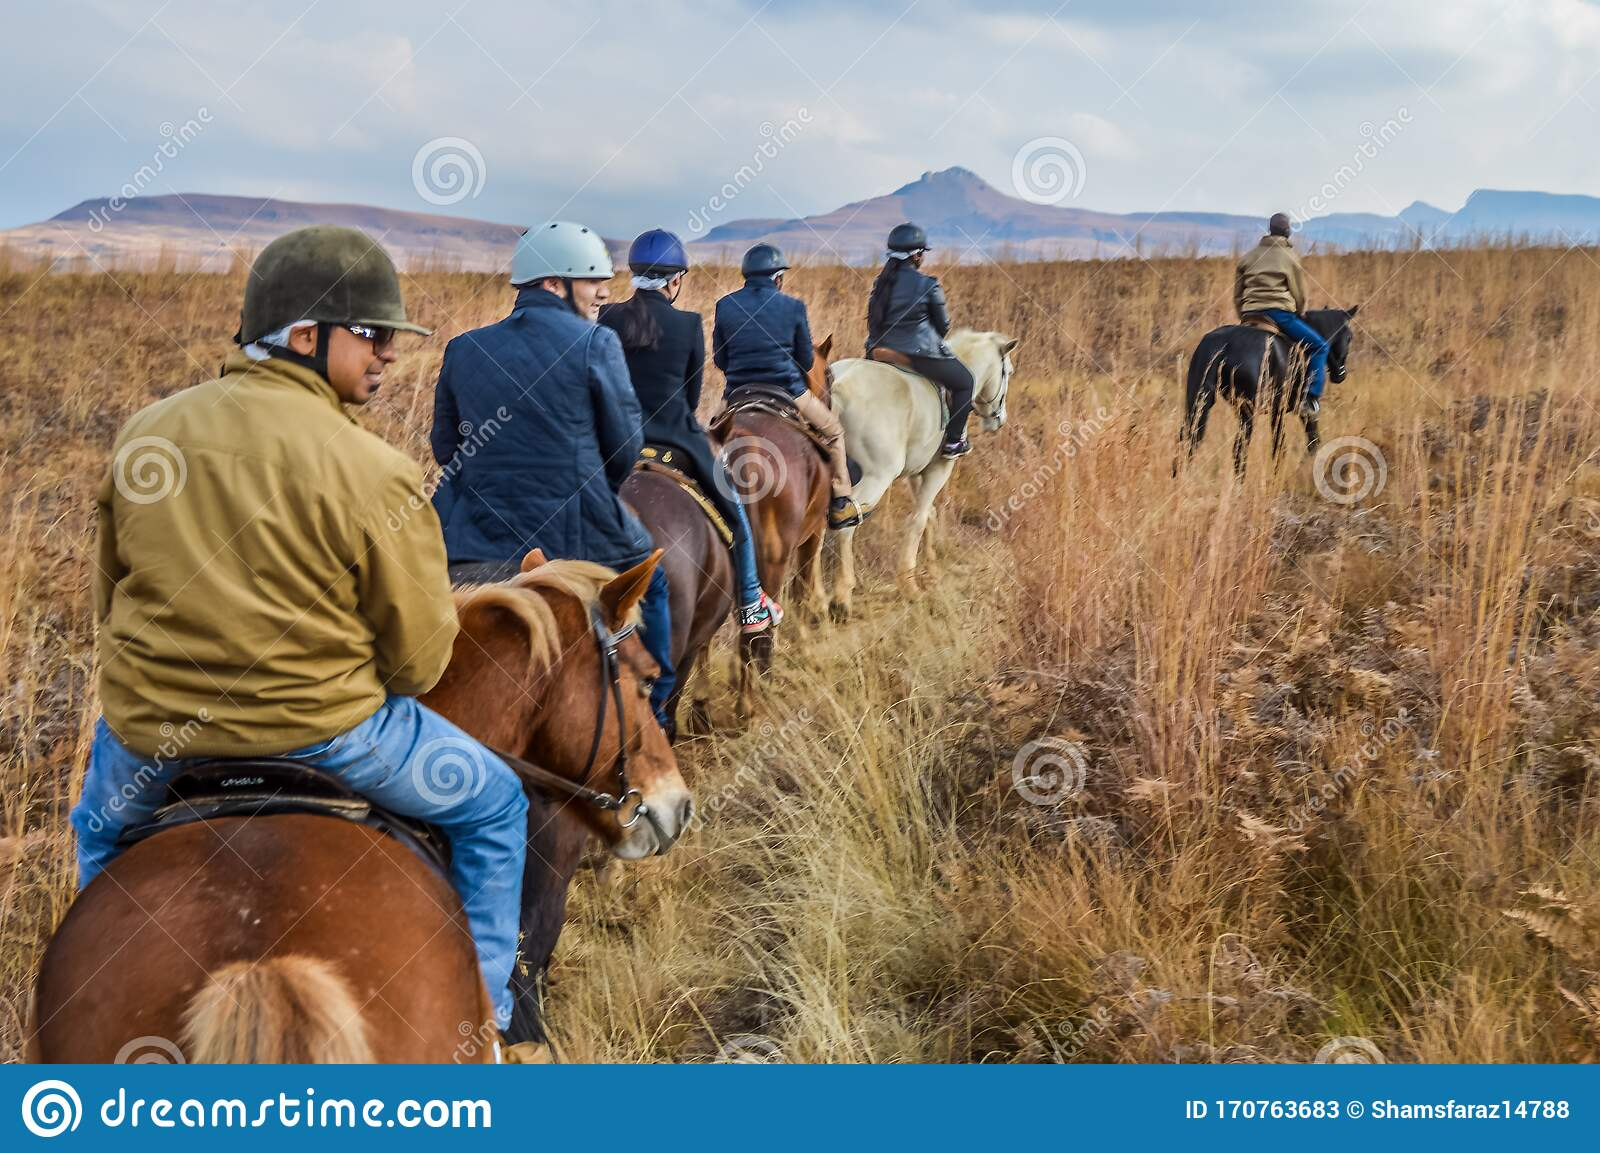 Group Of Indian Horse Riding Riders On A Trail In Drakensberg Re Editorial Stock Photo Image Of Asian Africa 170763683